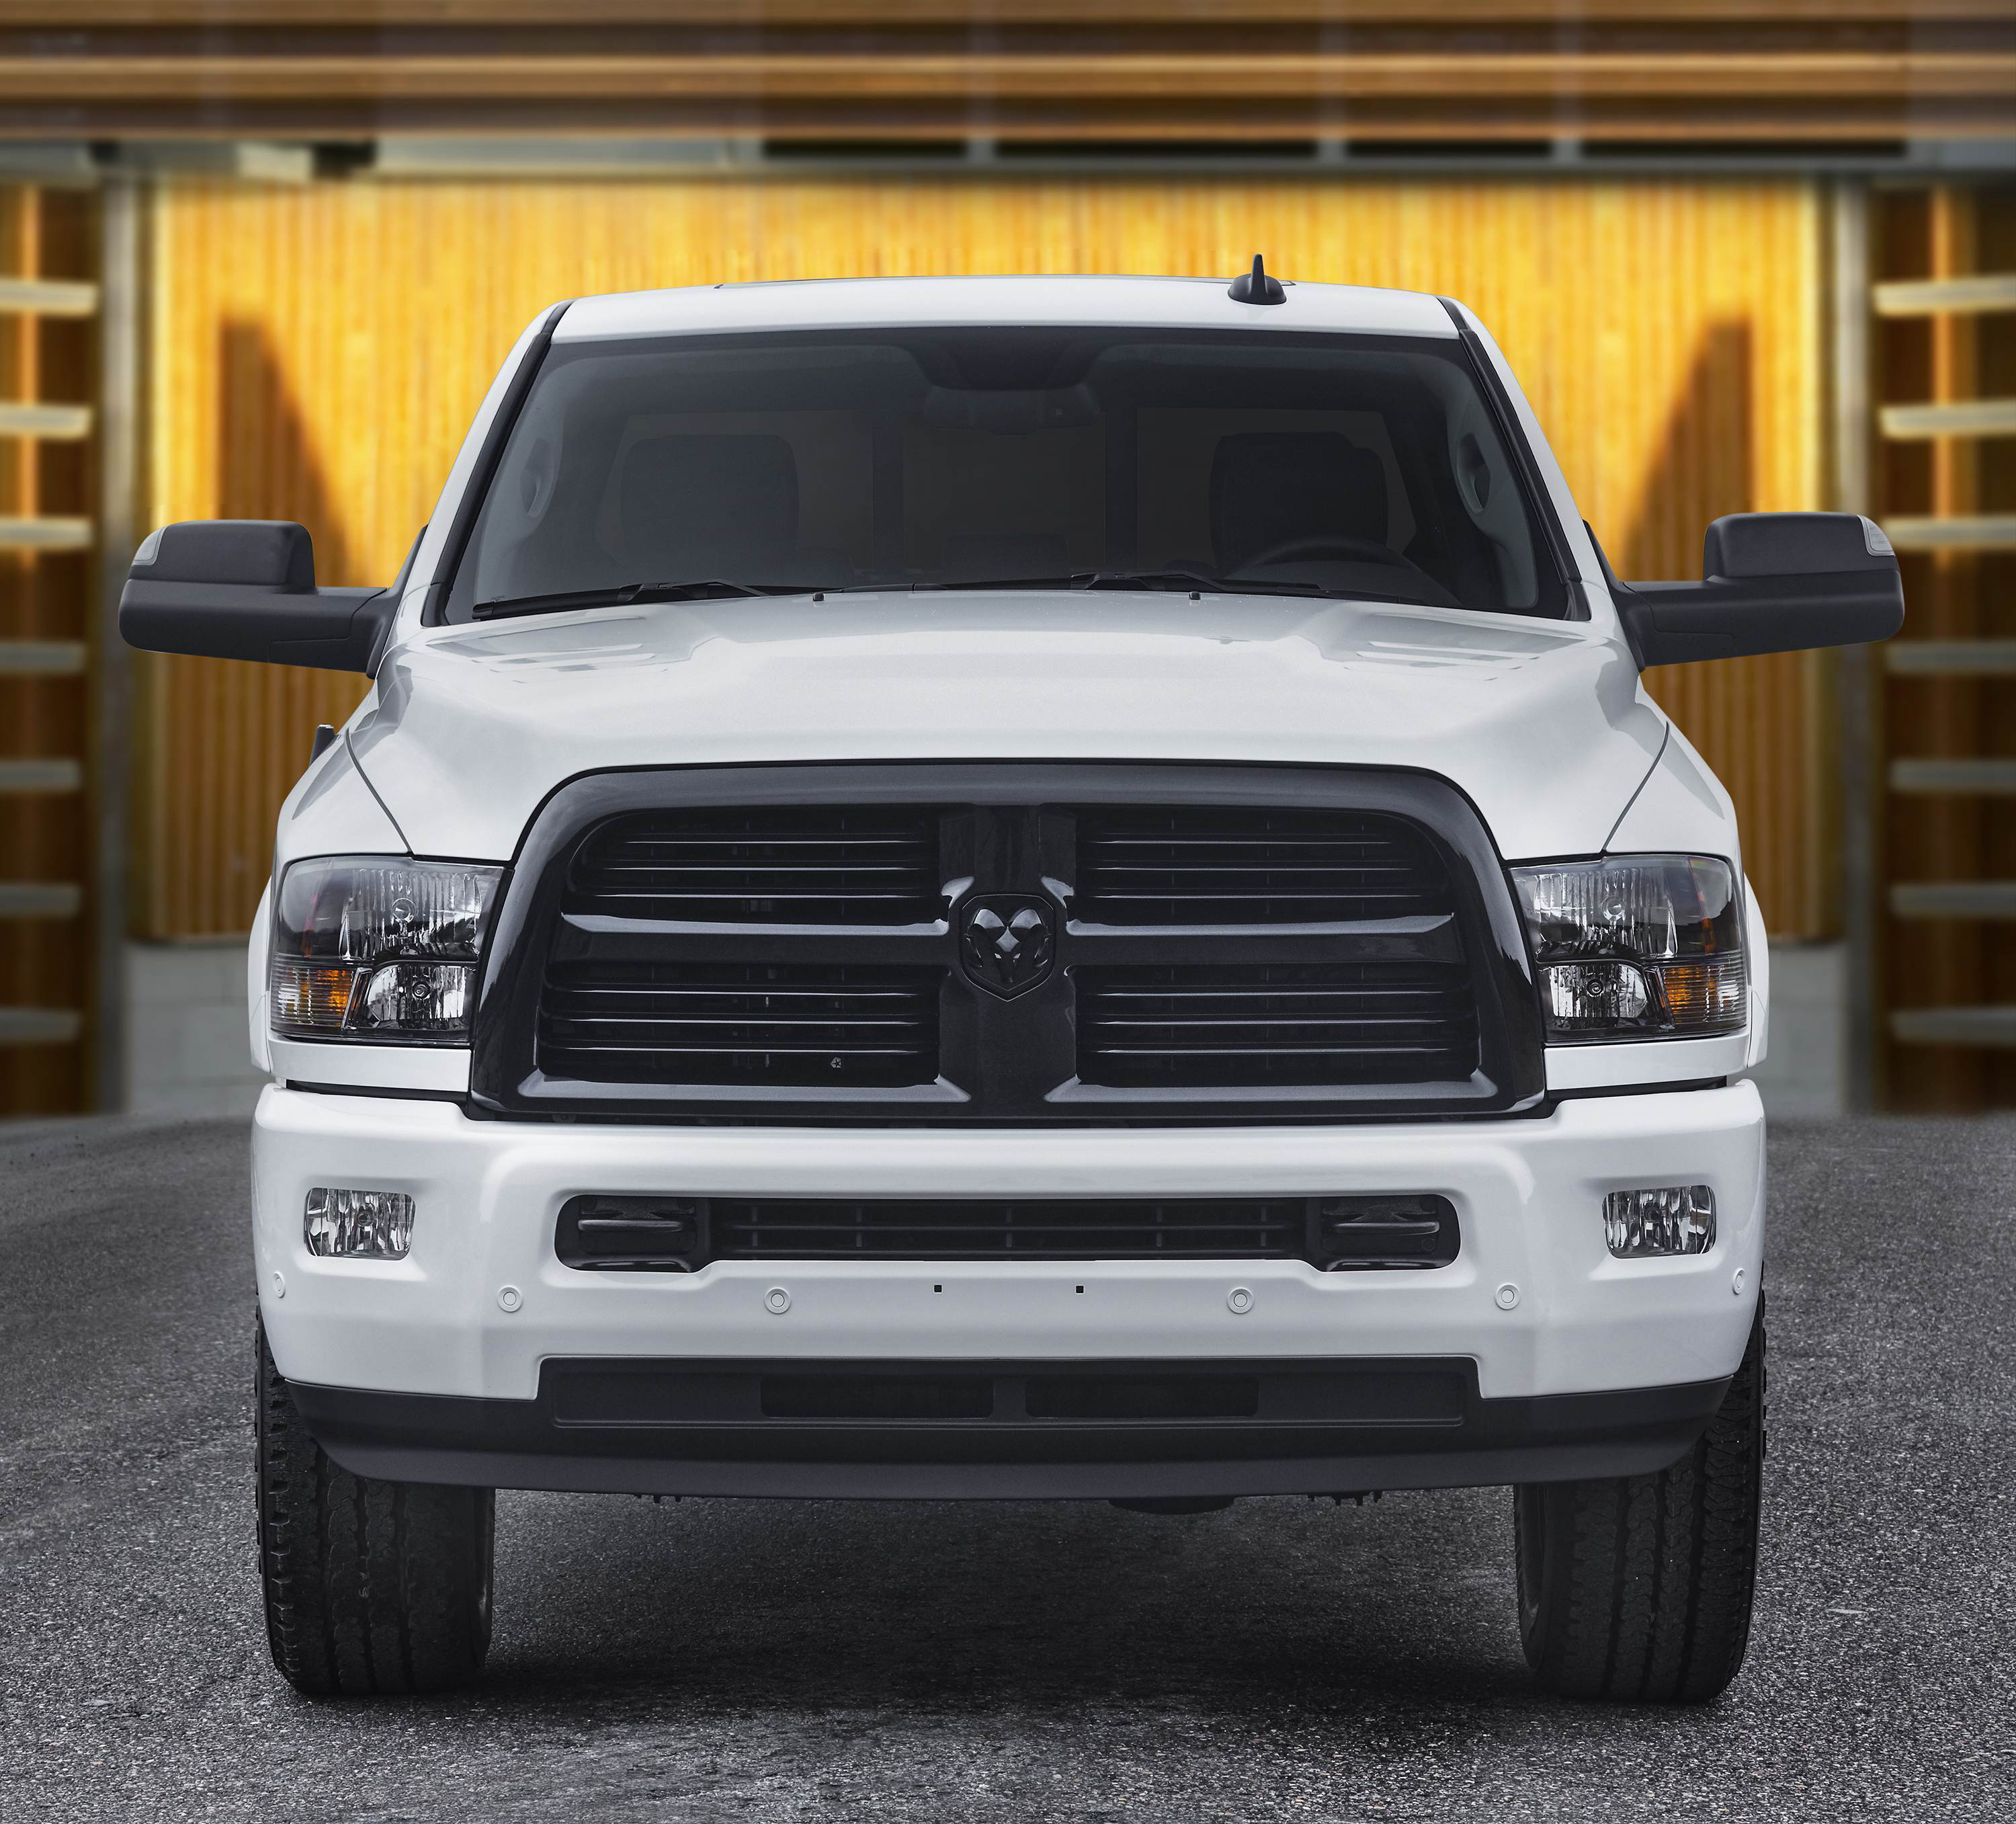 Ram 2017 Night Package 2500, 3500 pickups get a custom look with dark accents